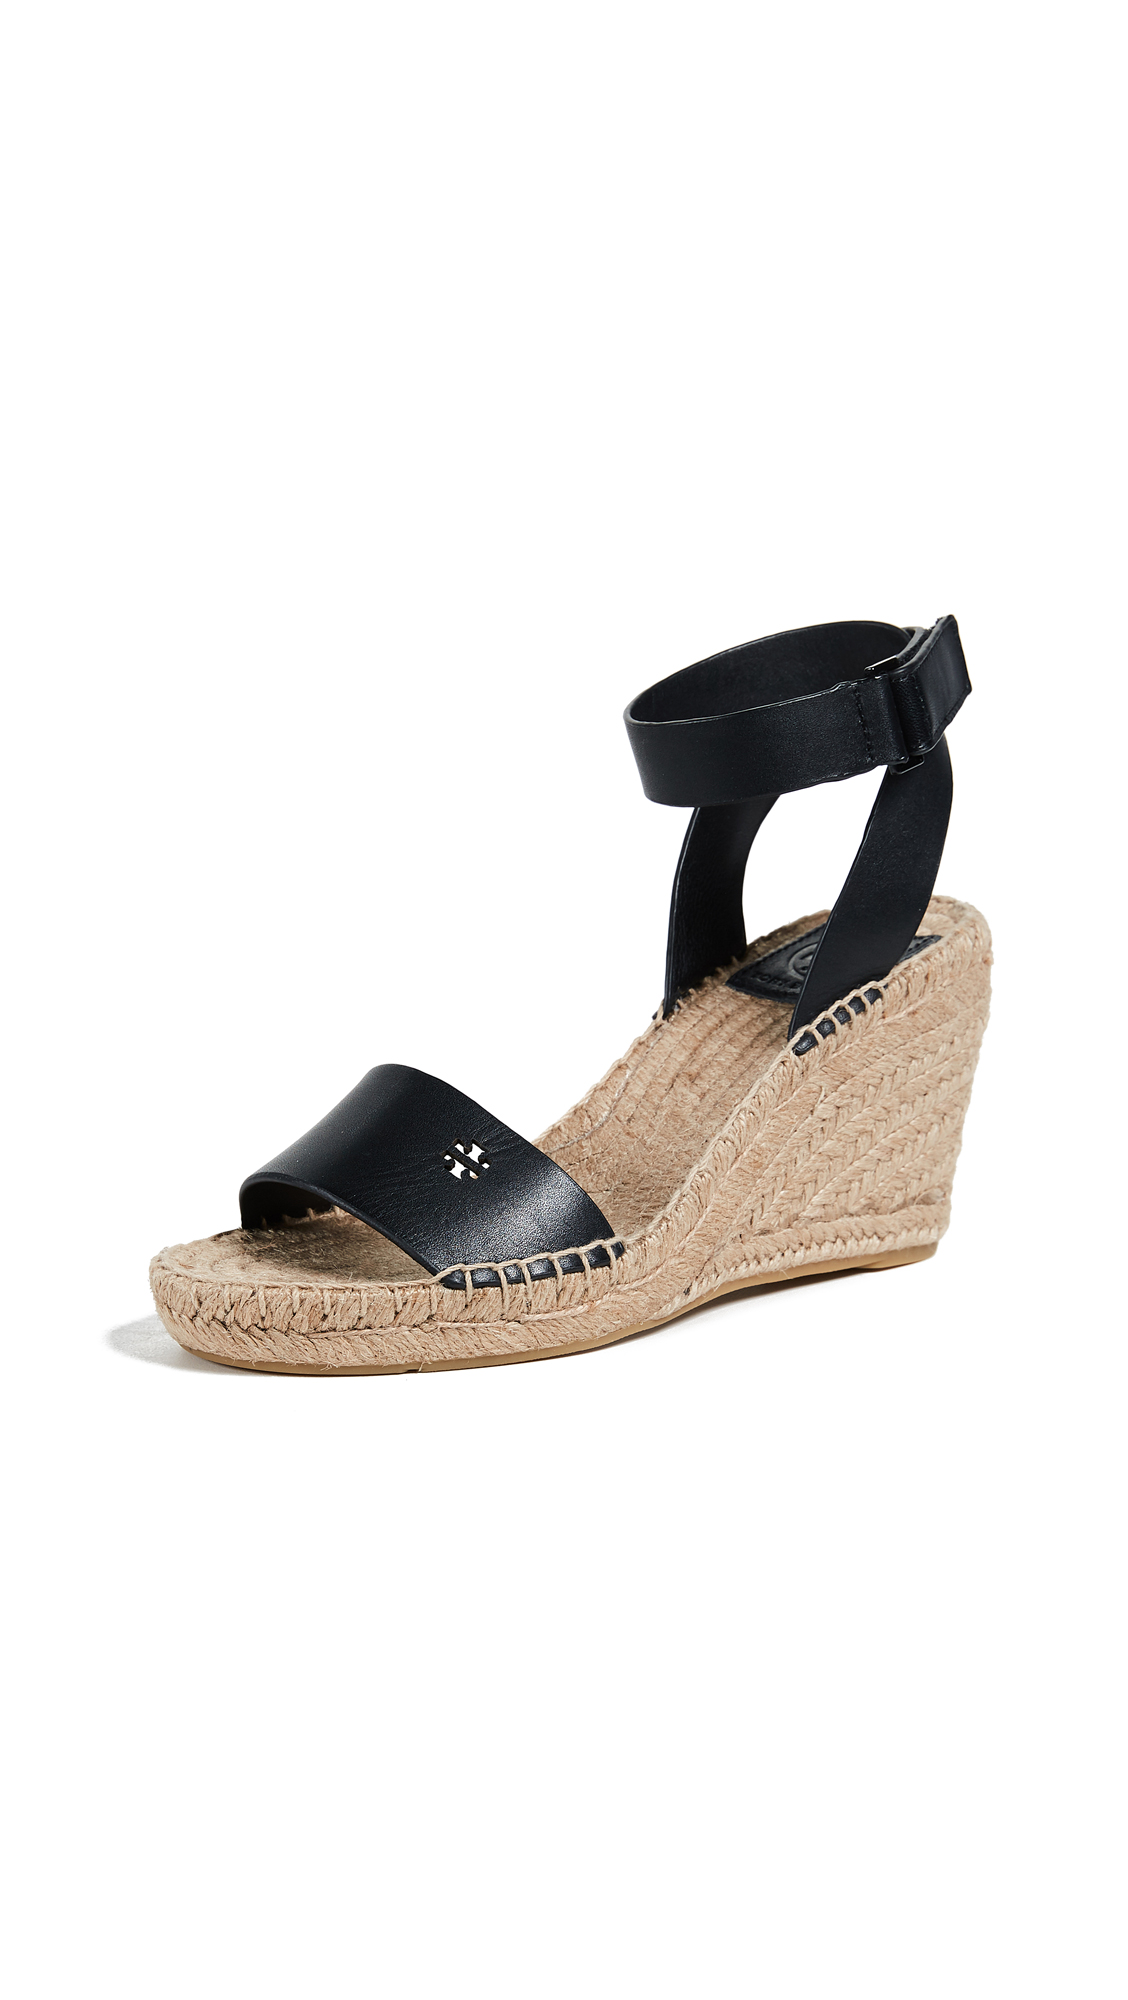 Tory Burch Bima 2 90mm Wedge Espadrilles - Perfect Black